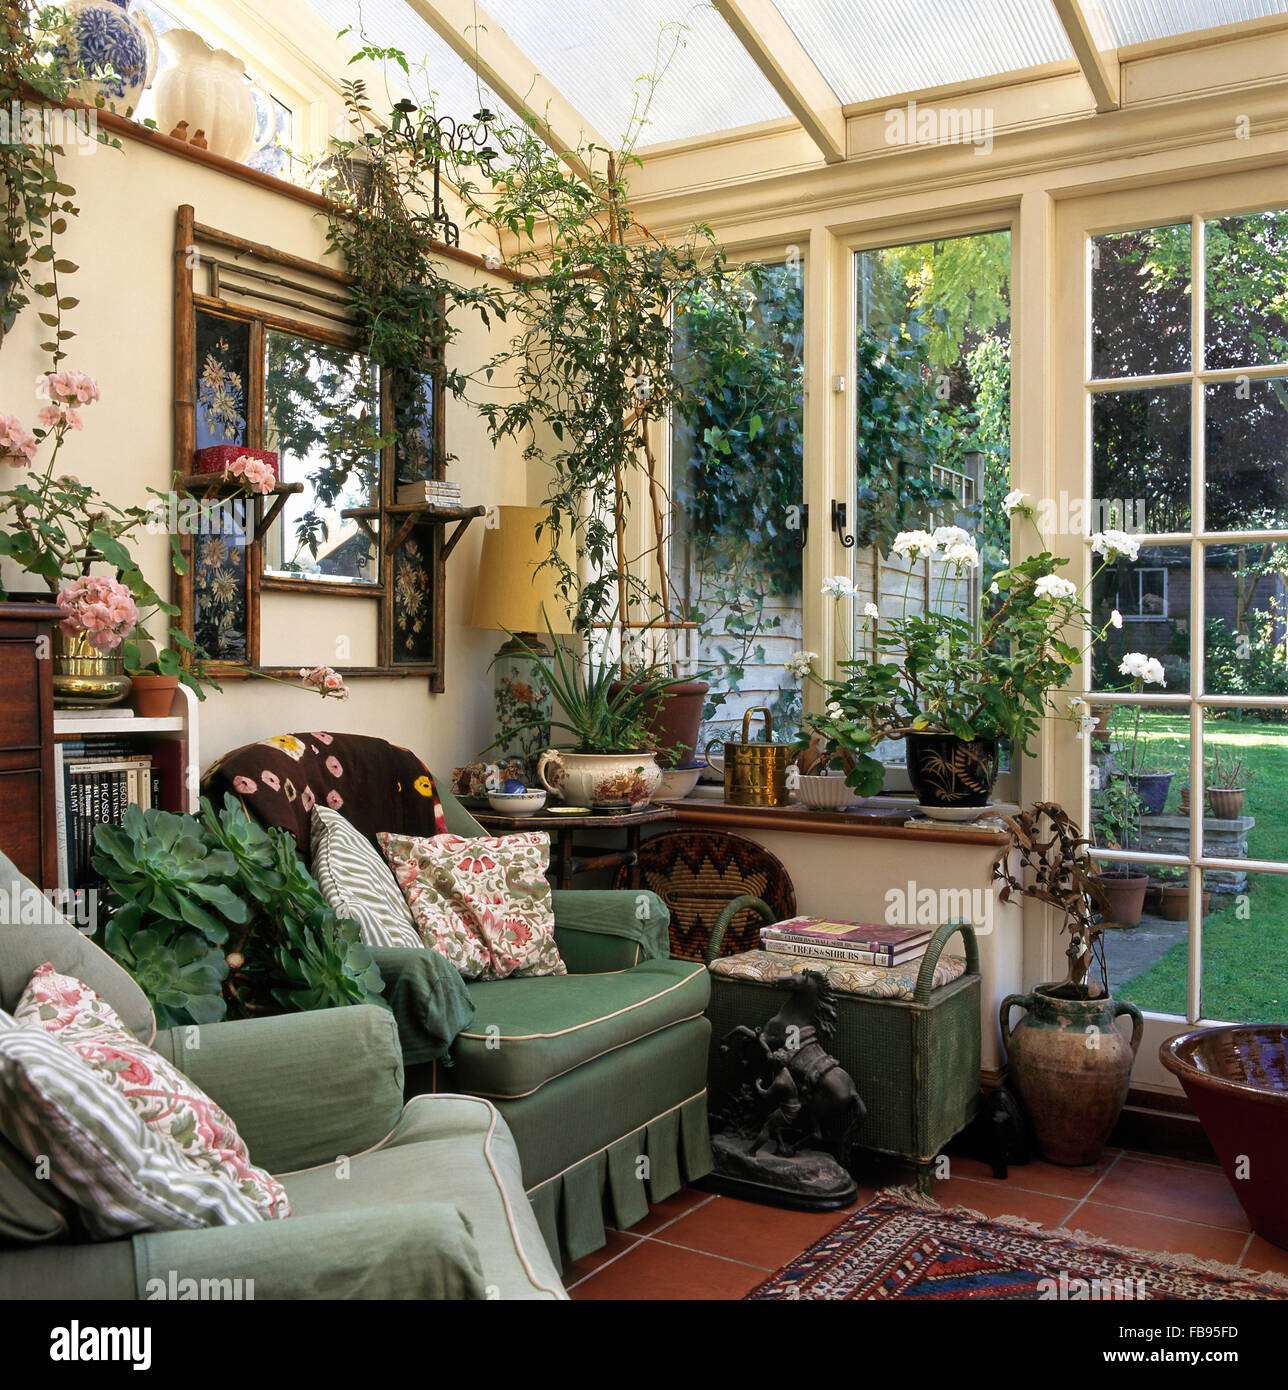 Edwardian Mirror Above Green Armchair In Nineties Conservatory Living Room